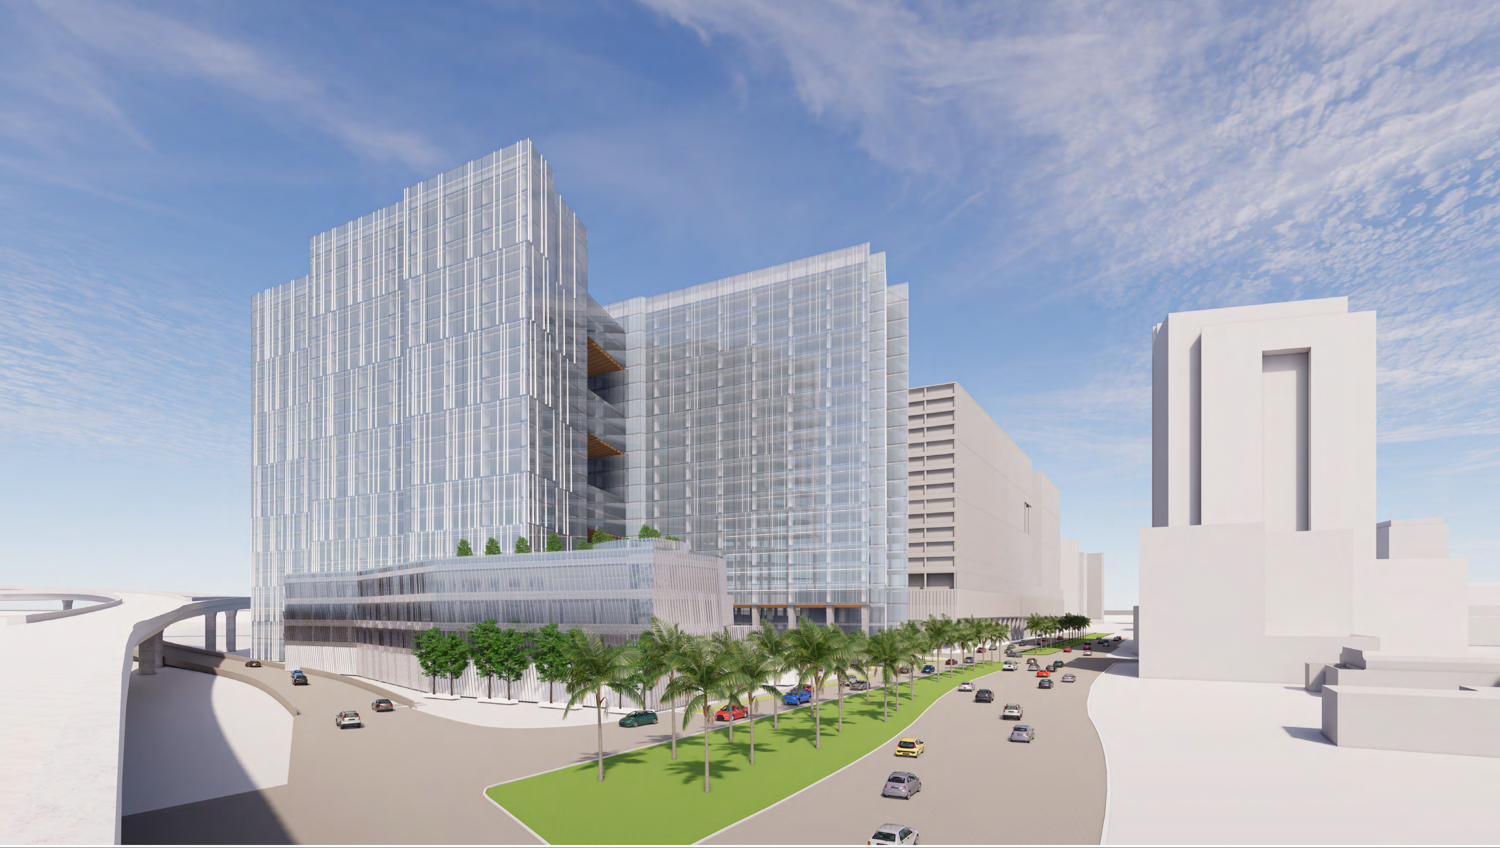 280 Woz Way viewed across Almadenb Boulevard, rendering by C2K Architecture